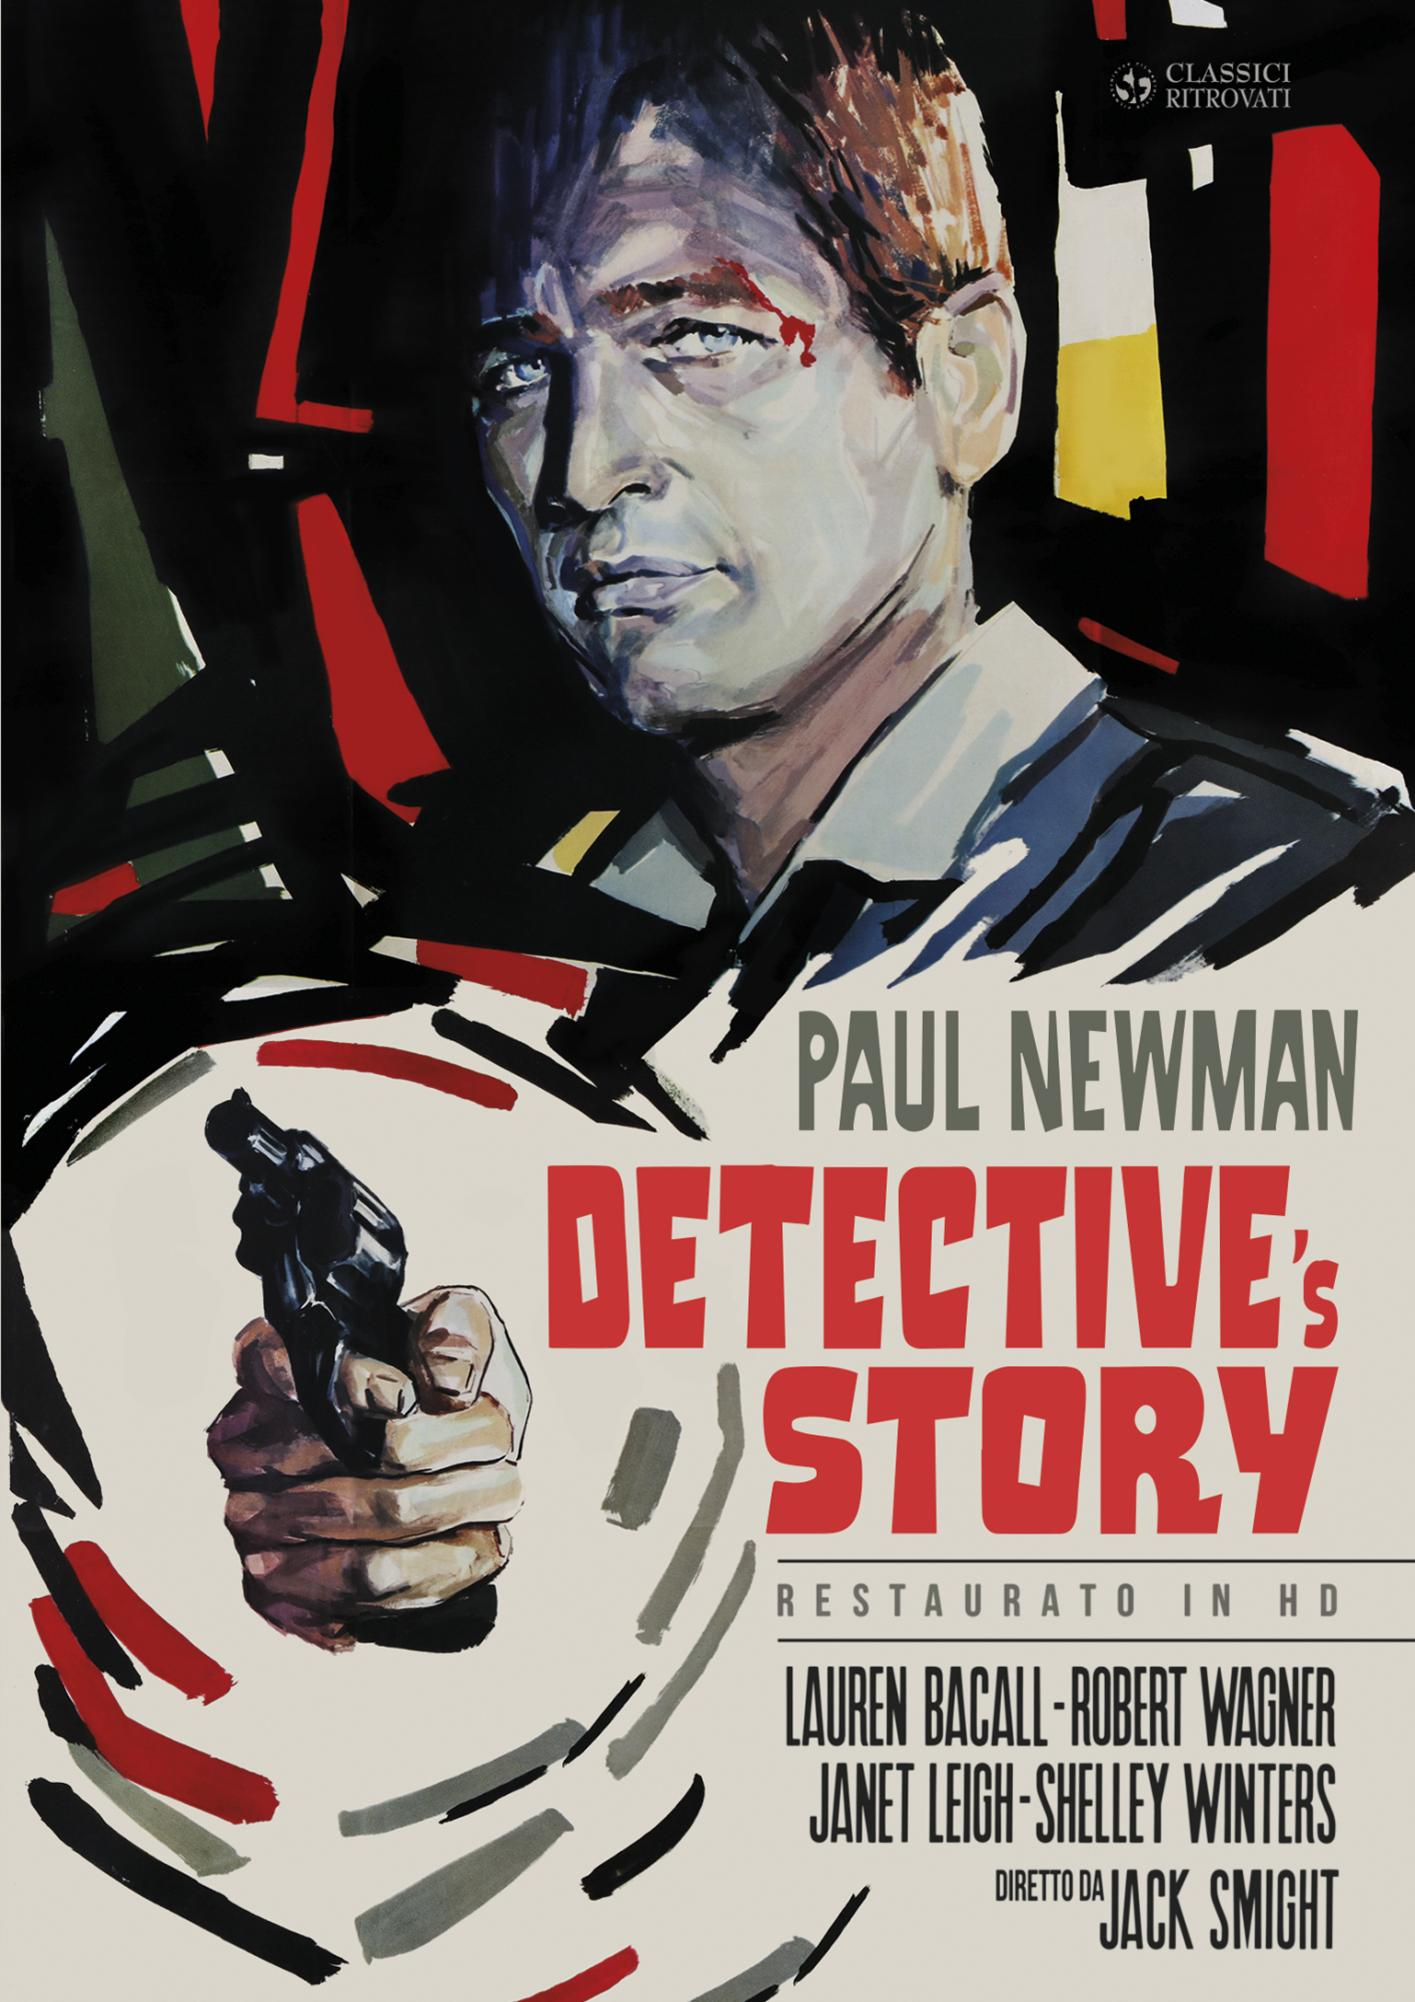 DETECTIVE'S STORY (RESTAURATO IN HD) (DVD)